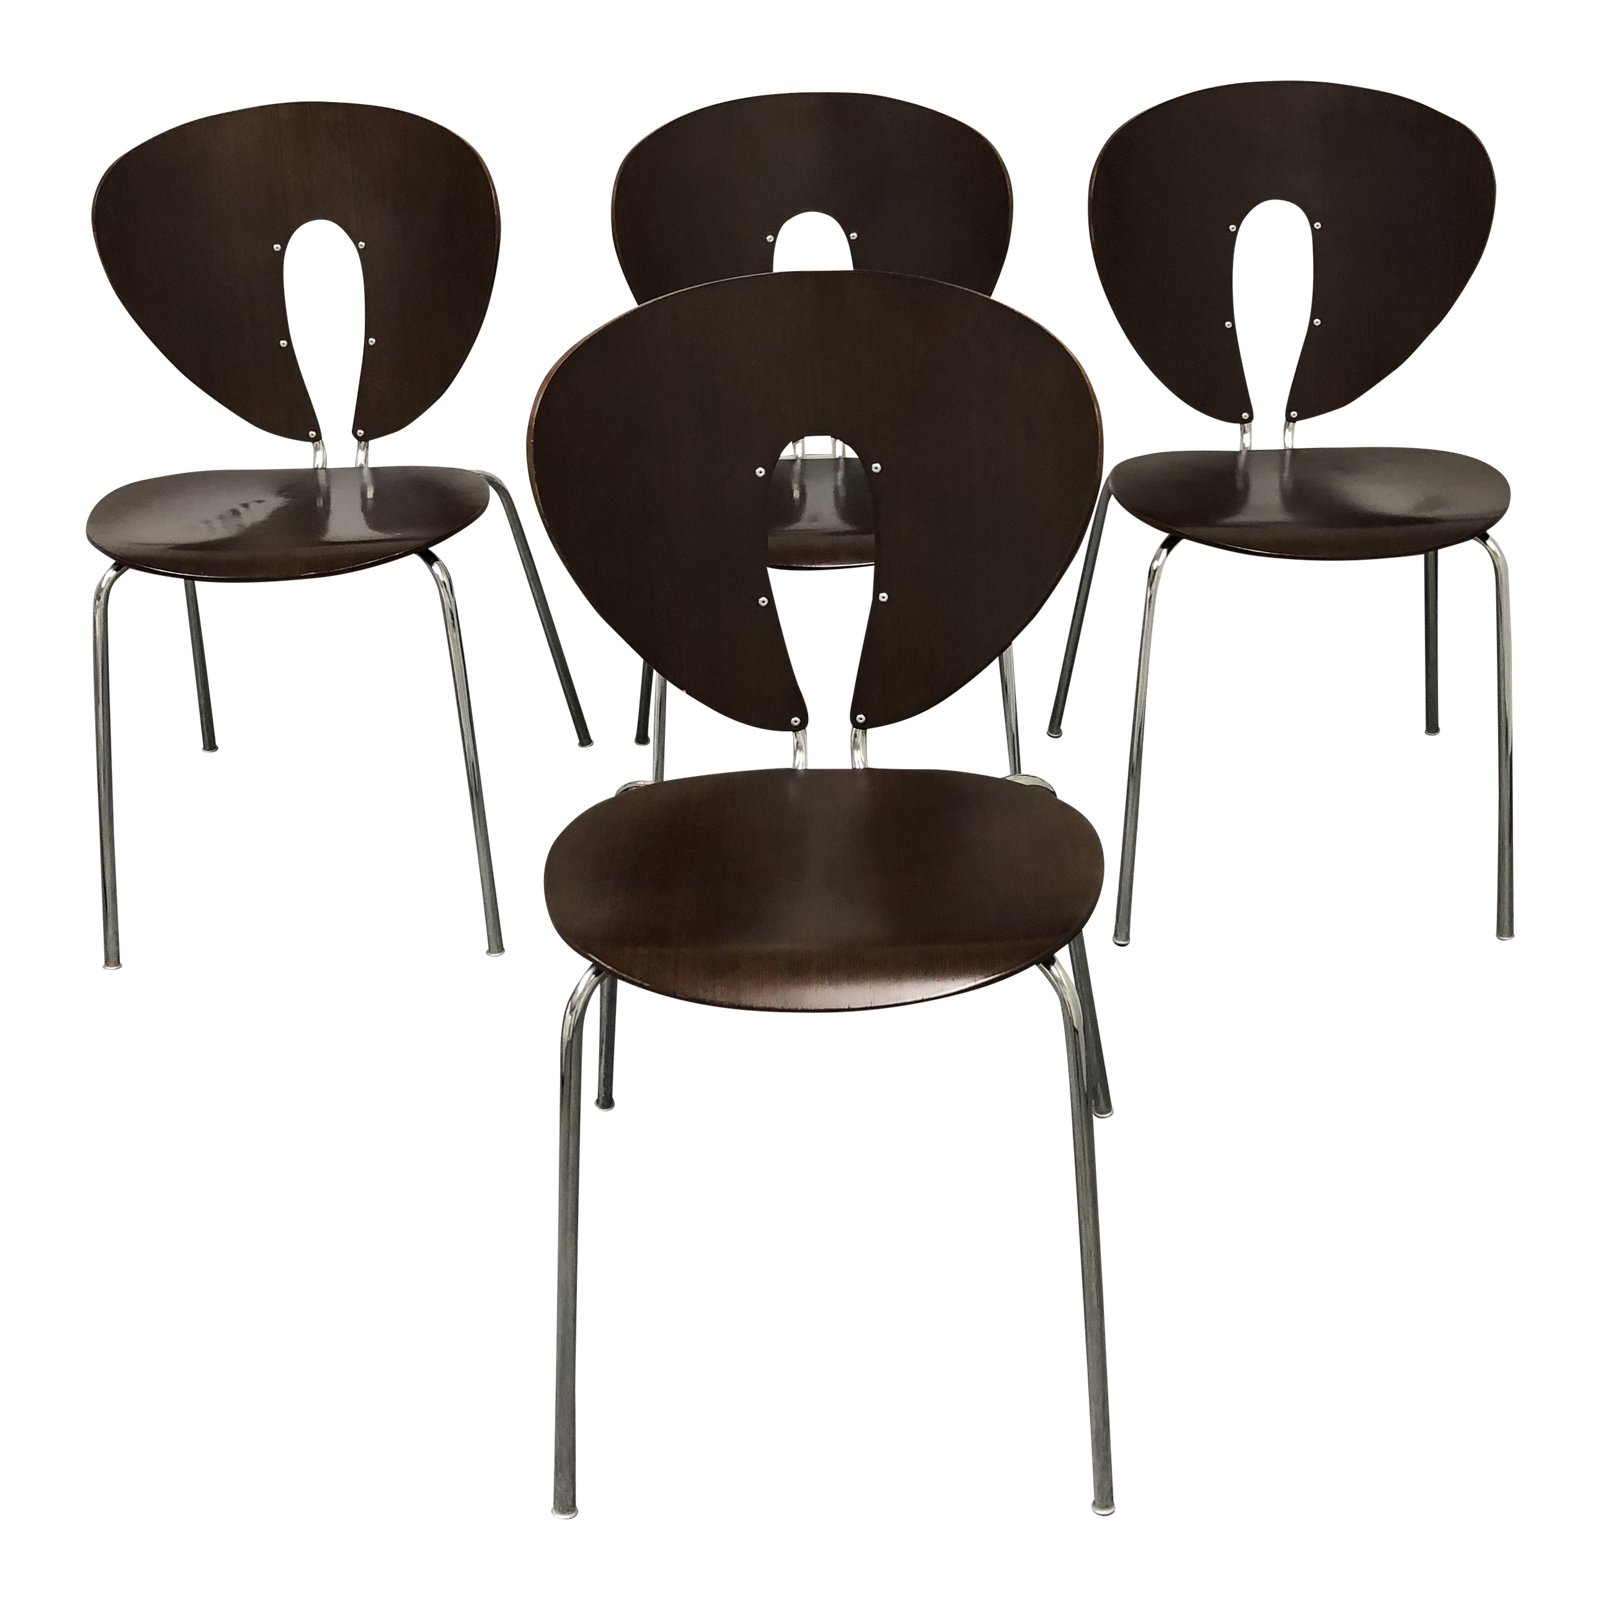 design within reach chair walnut swing 2f xxl set of four global chairs